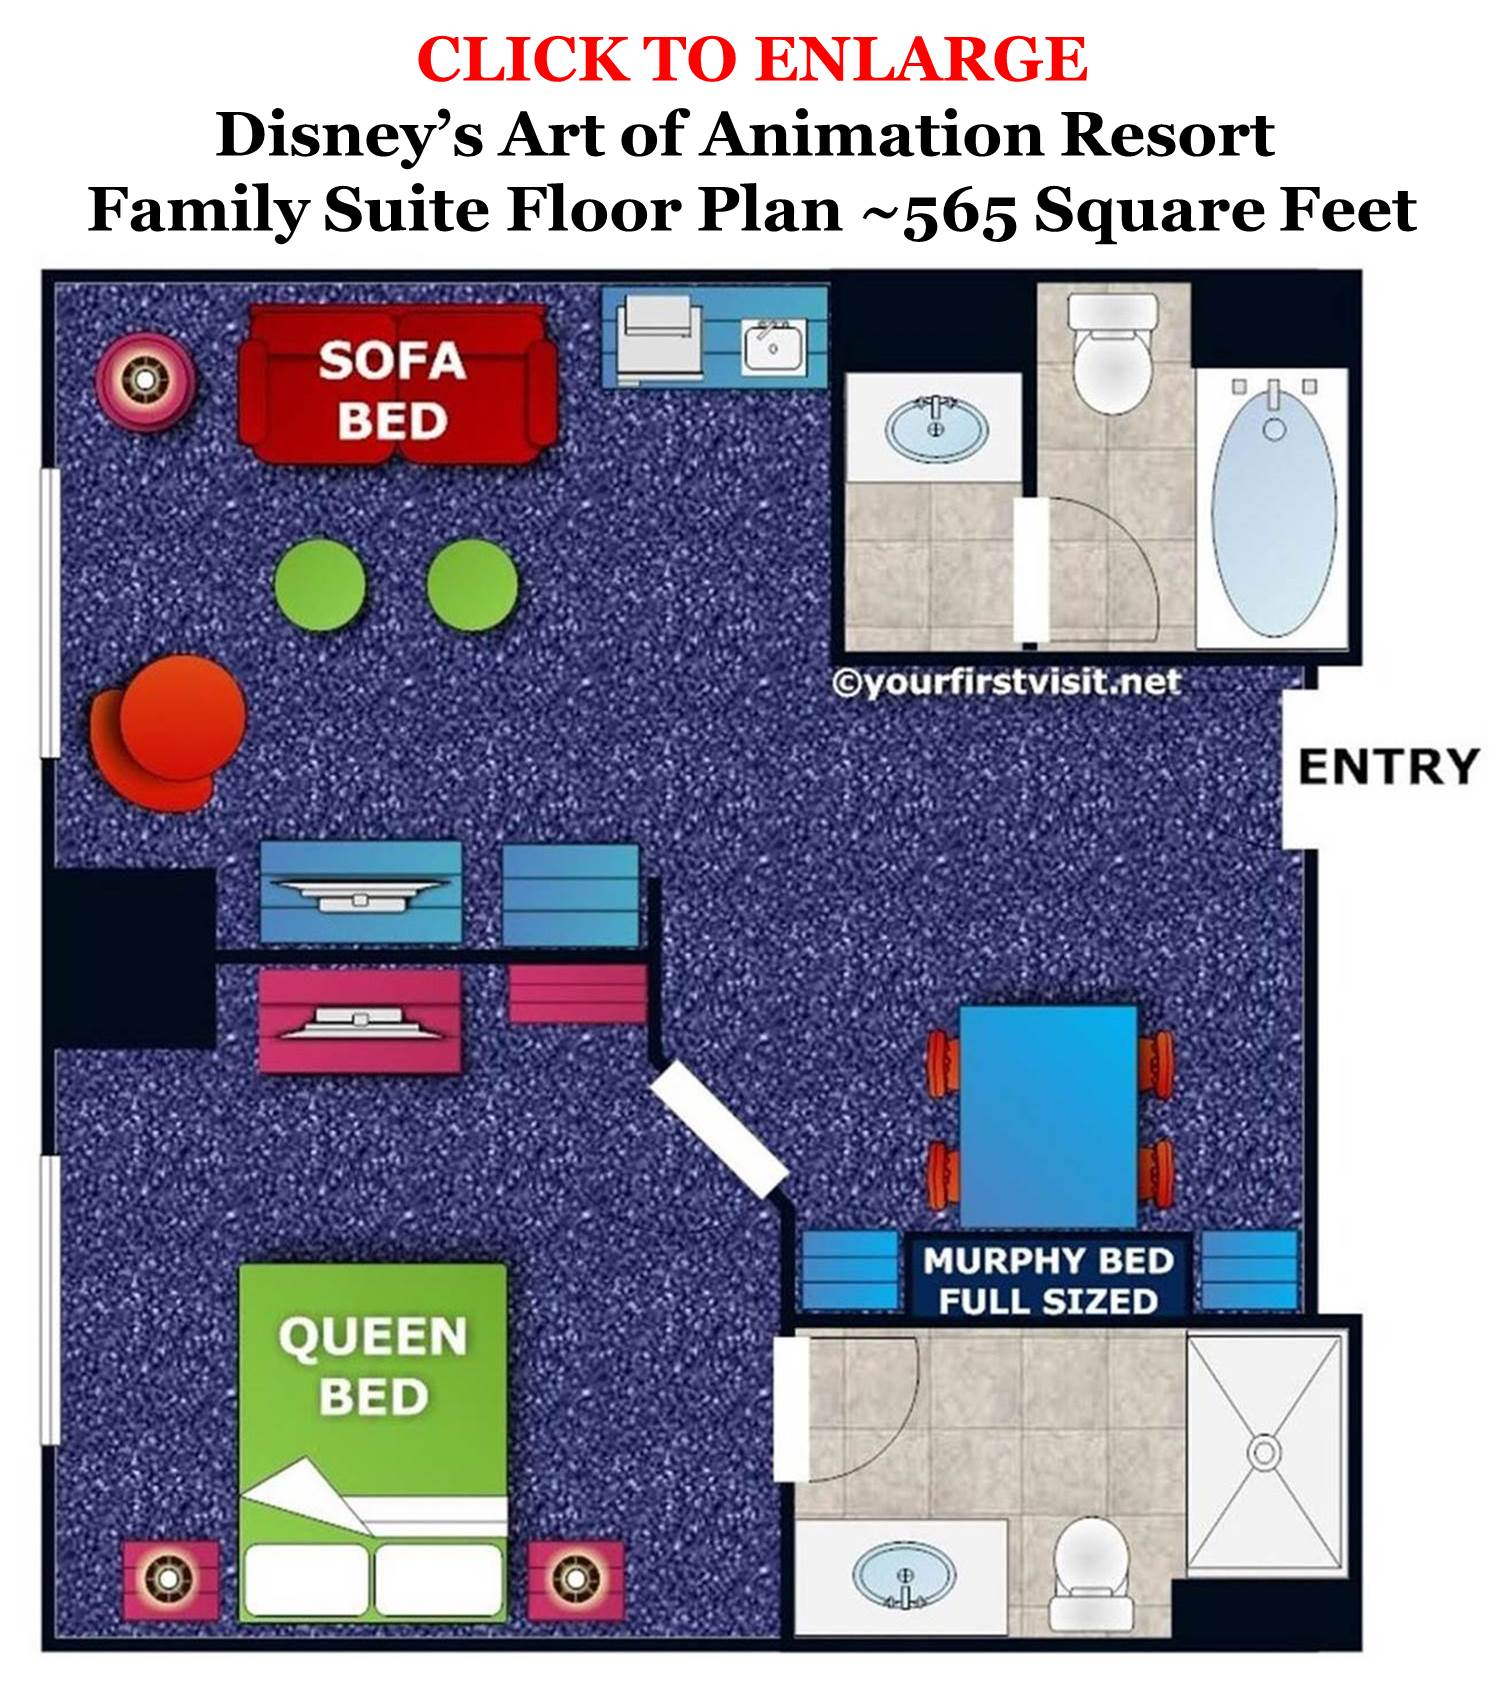 Accommodations in The Family Suites at Disney\u0027s Art of